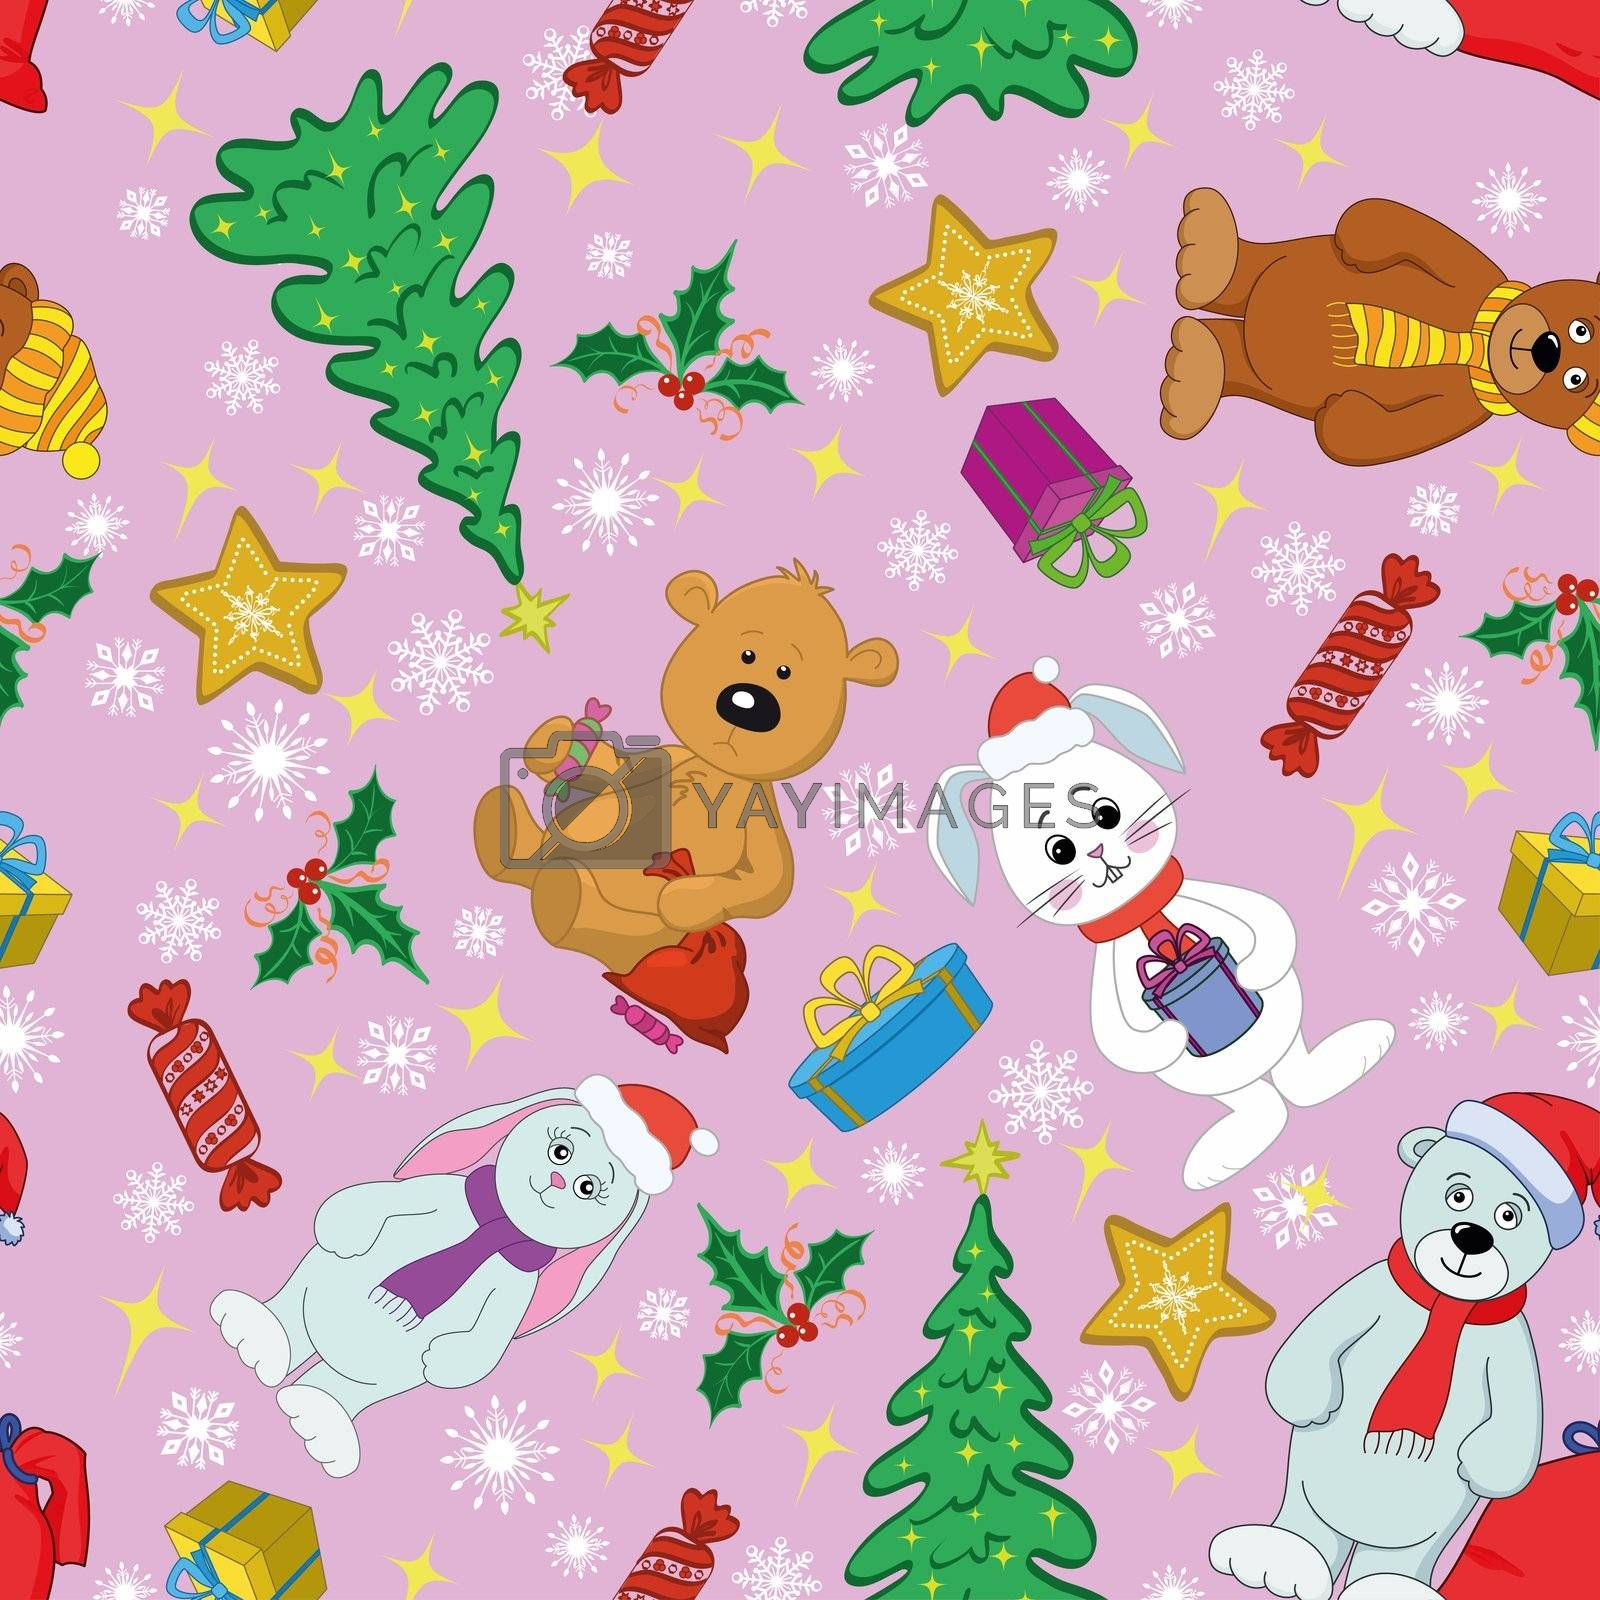 Christmas cartoon seamless background for holiday design with toys characters